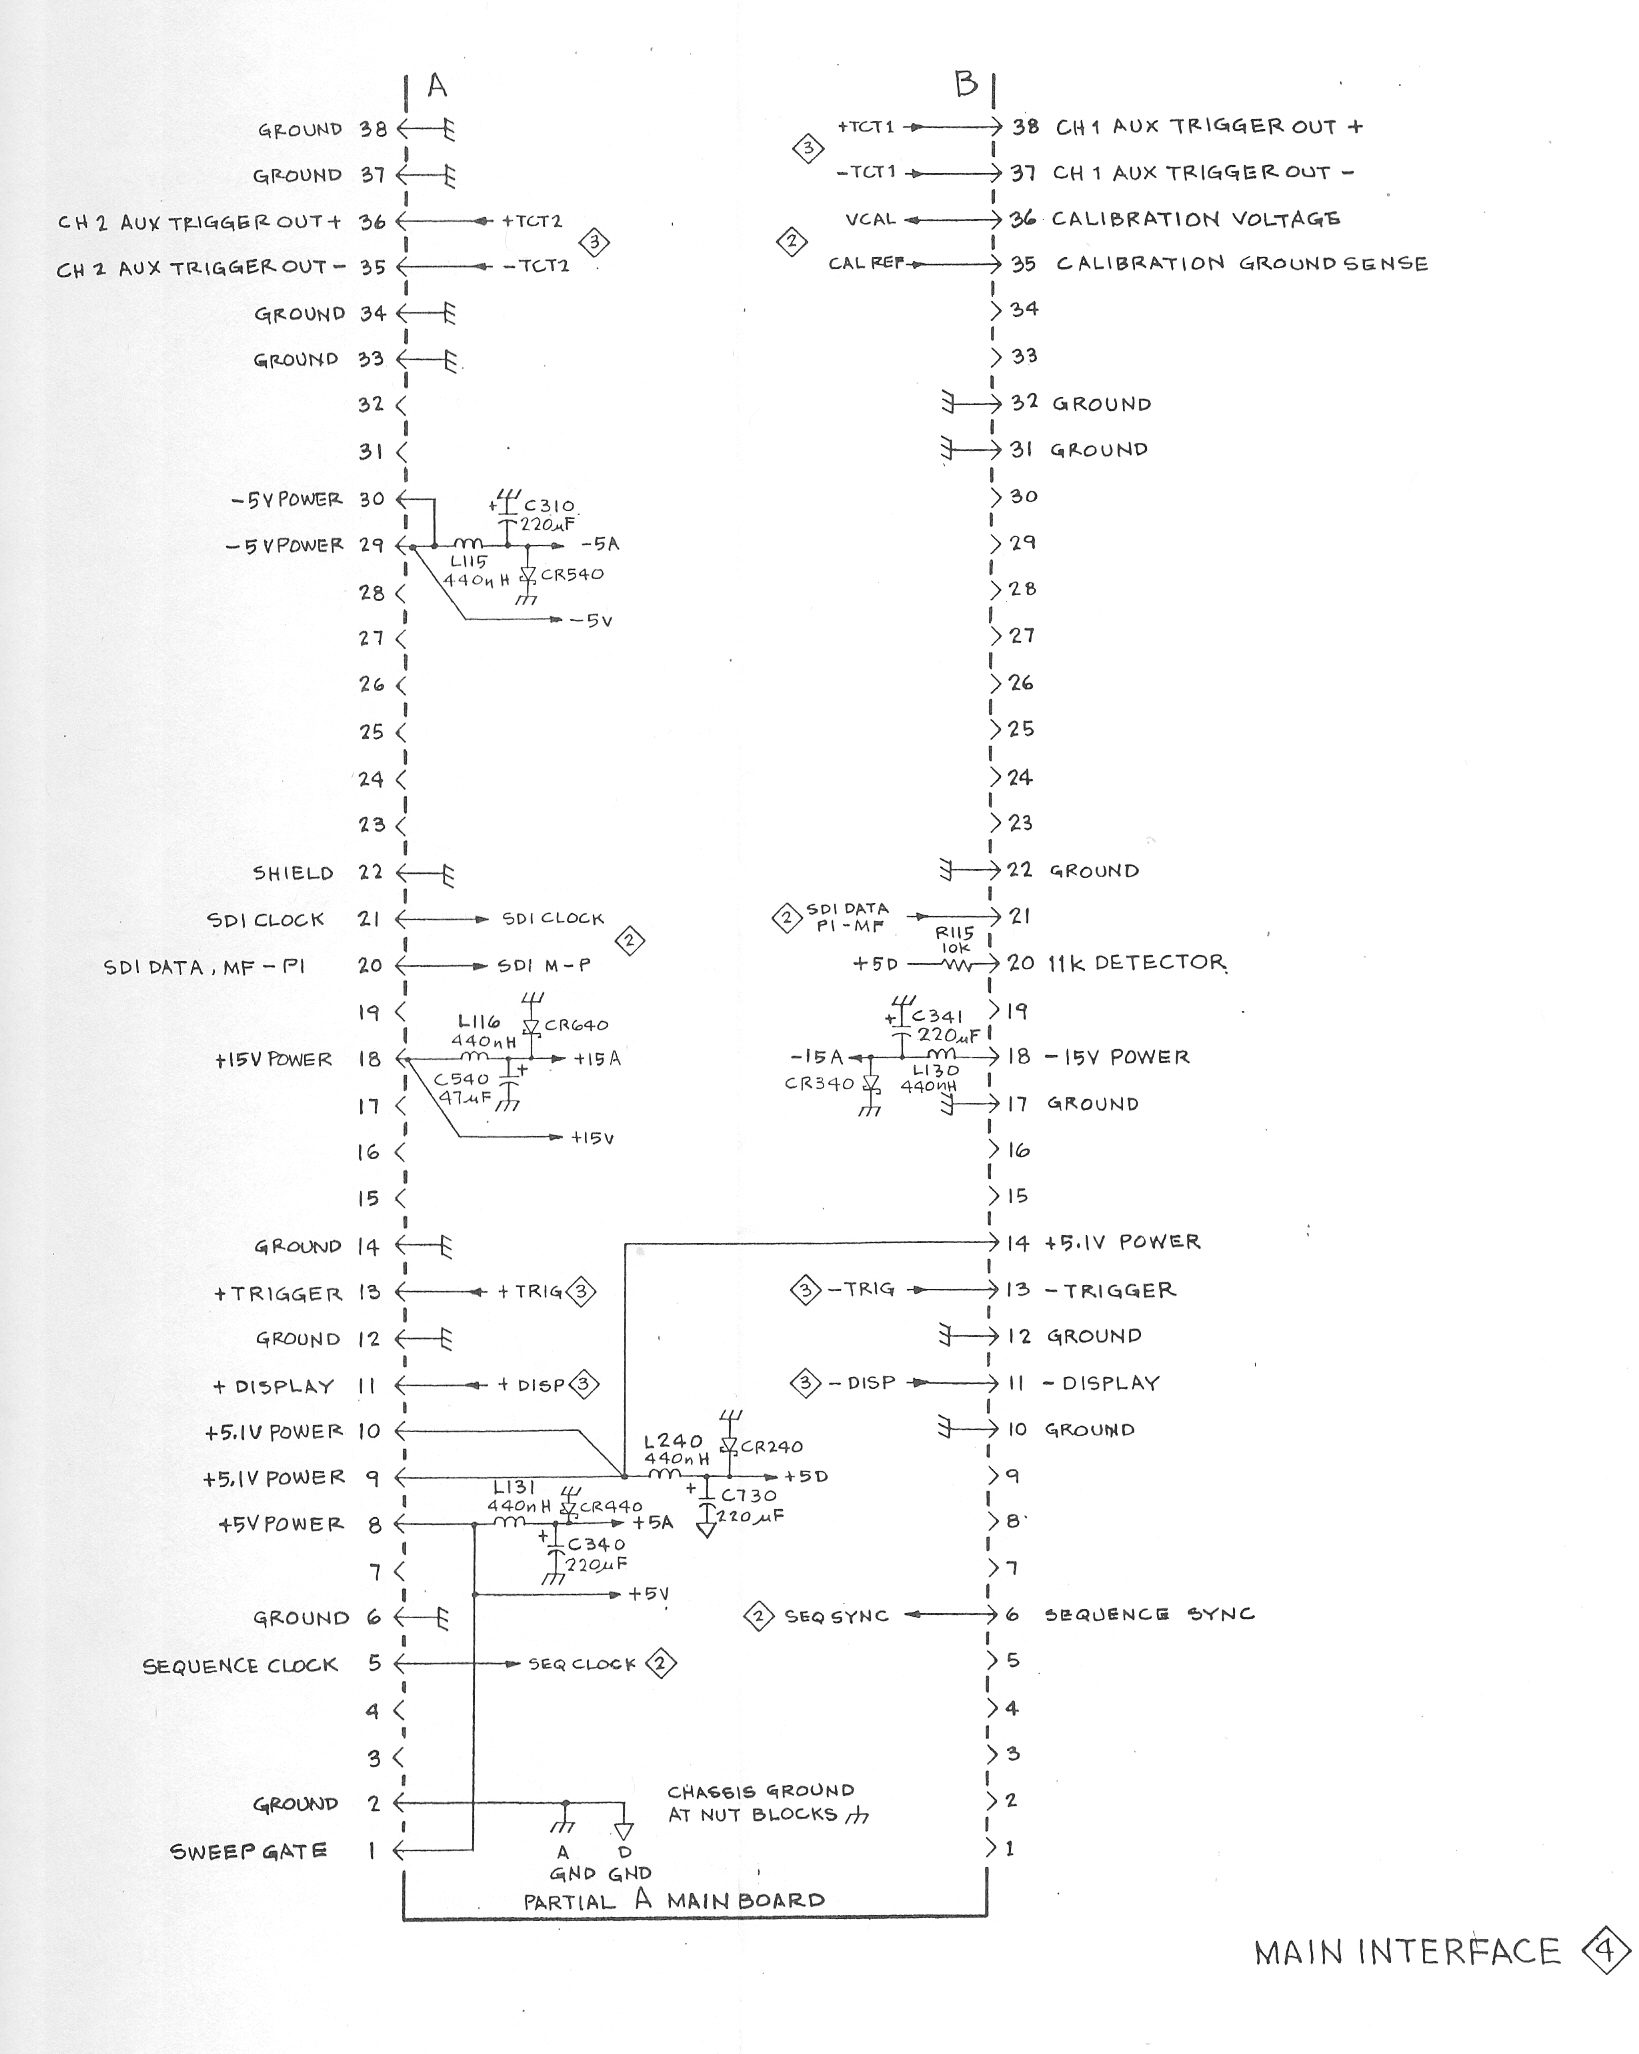 Tektronix 2710 Service Manual